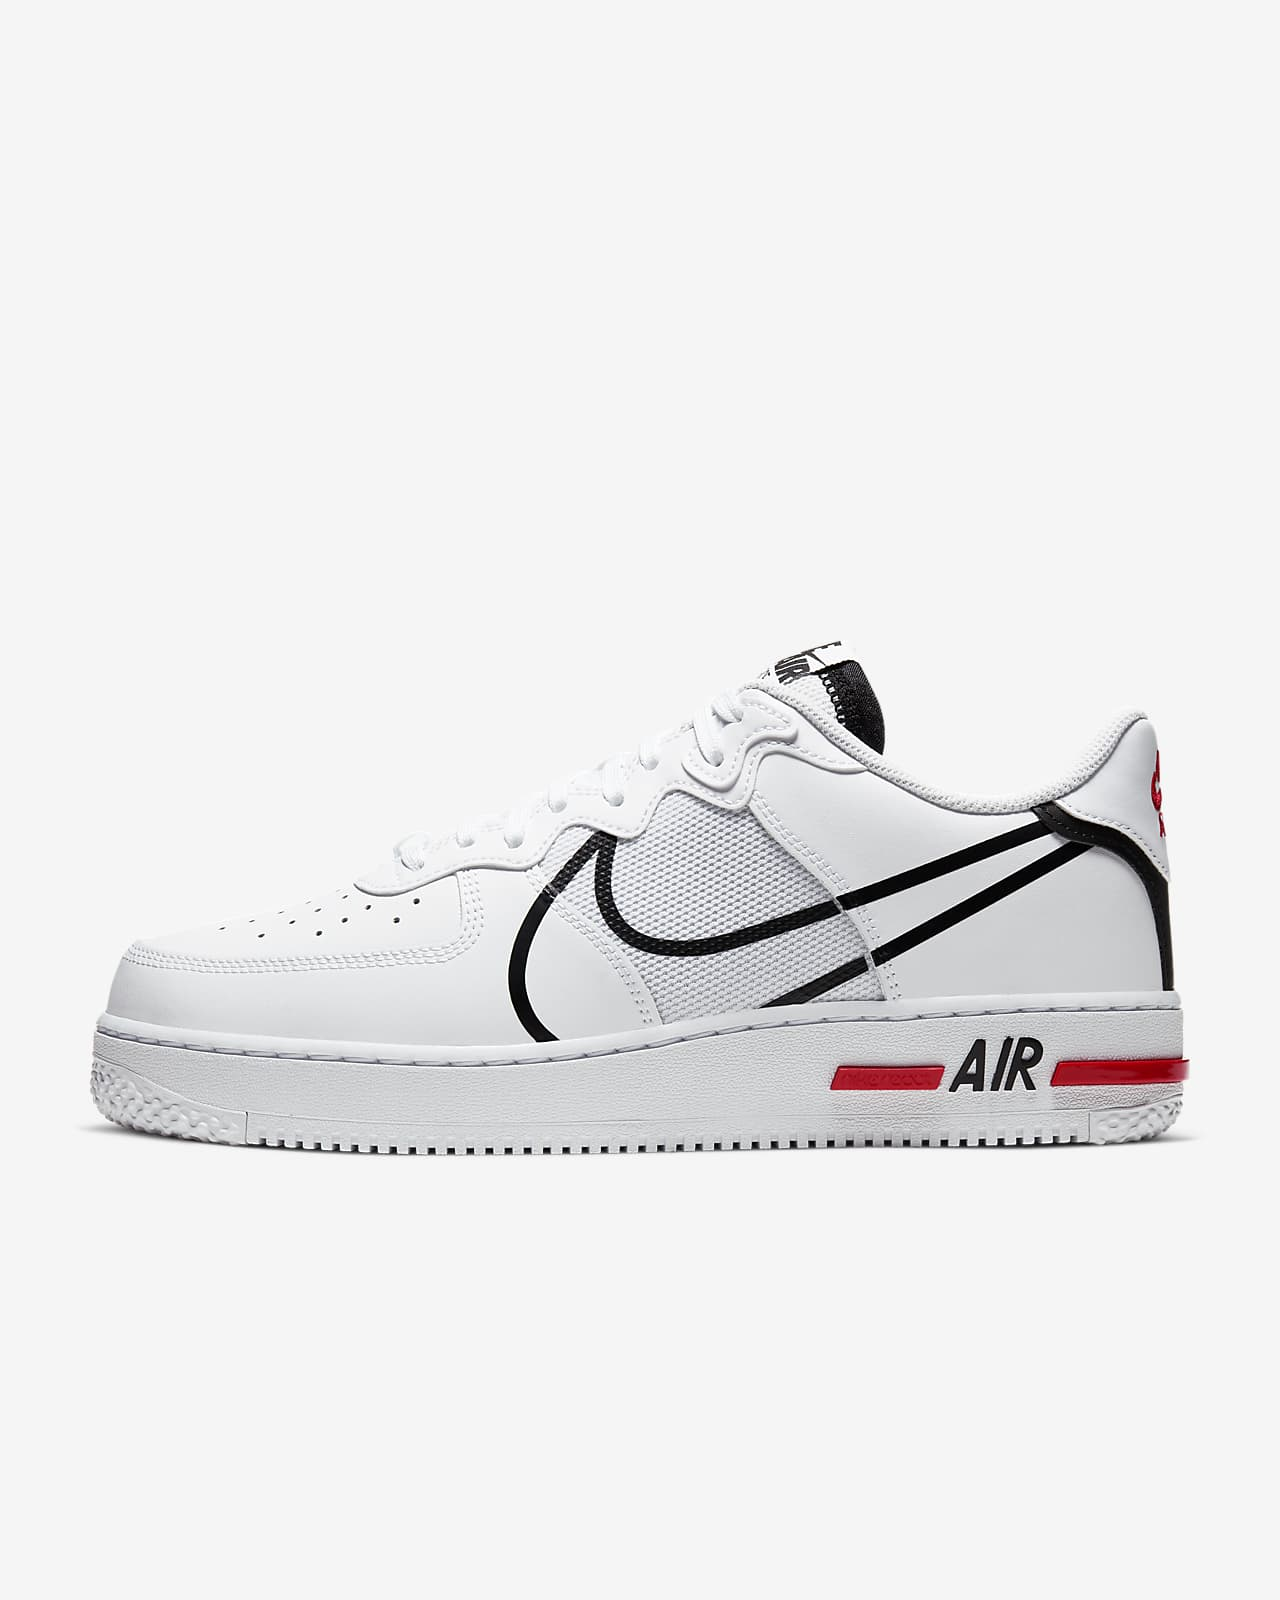 Soldes > air force one react blanche et rouge > en stock